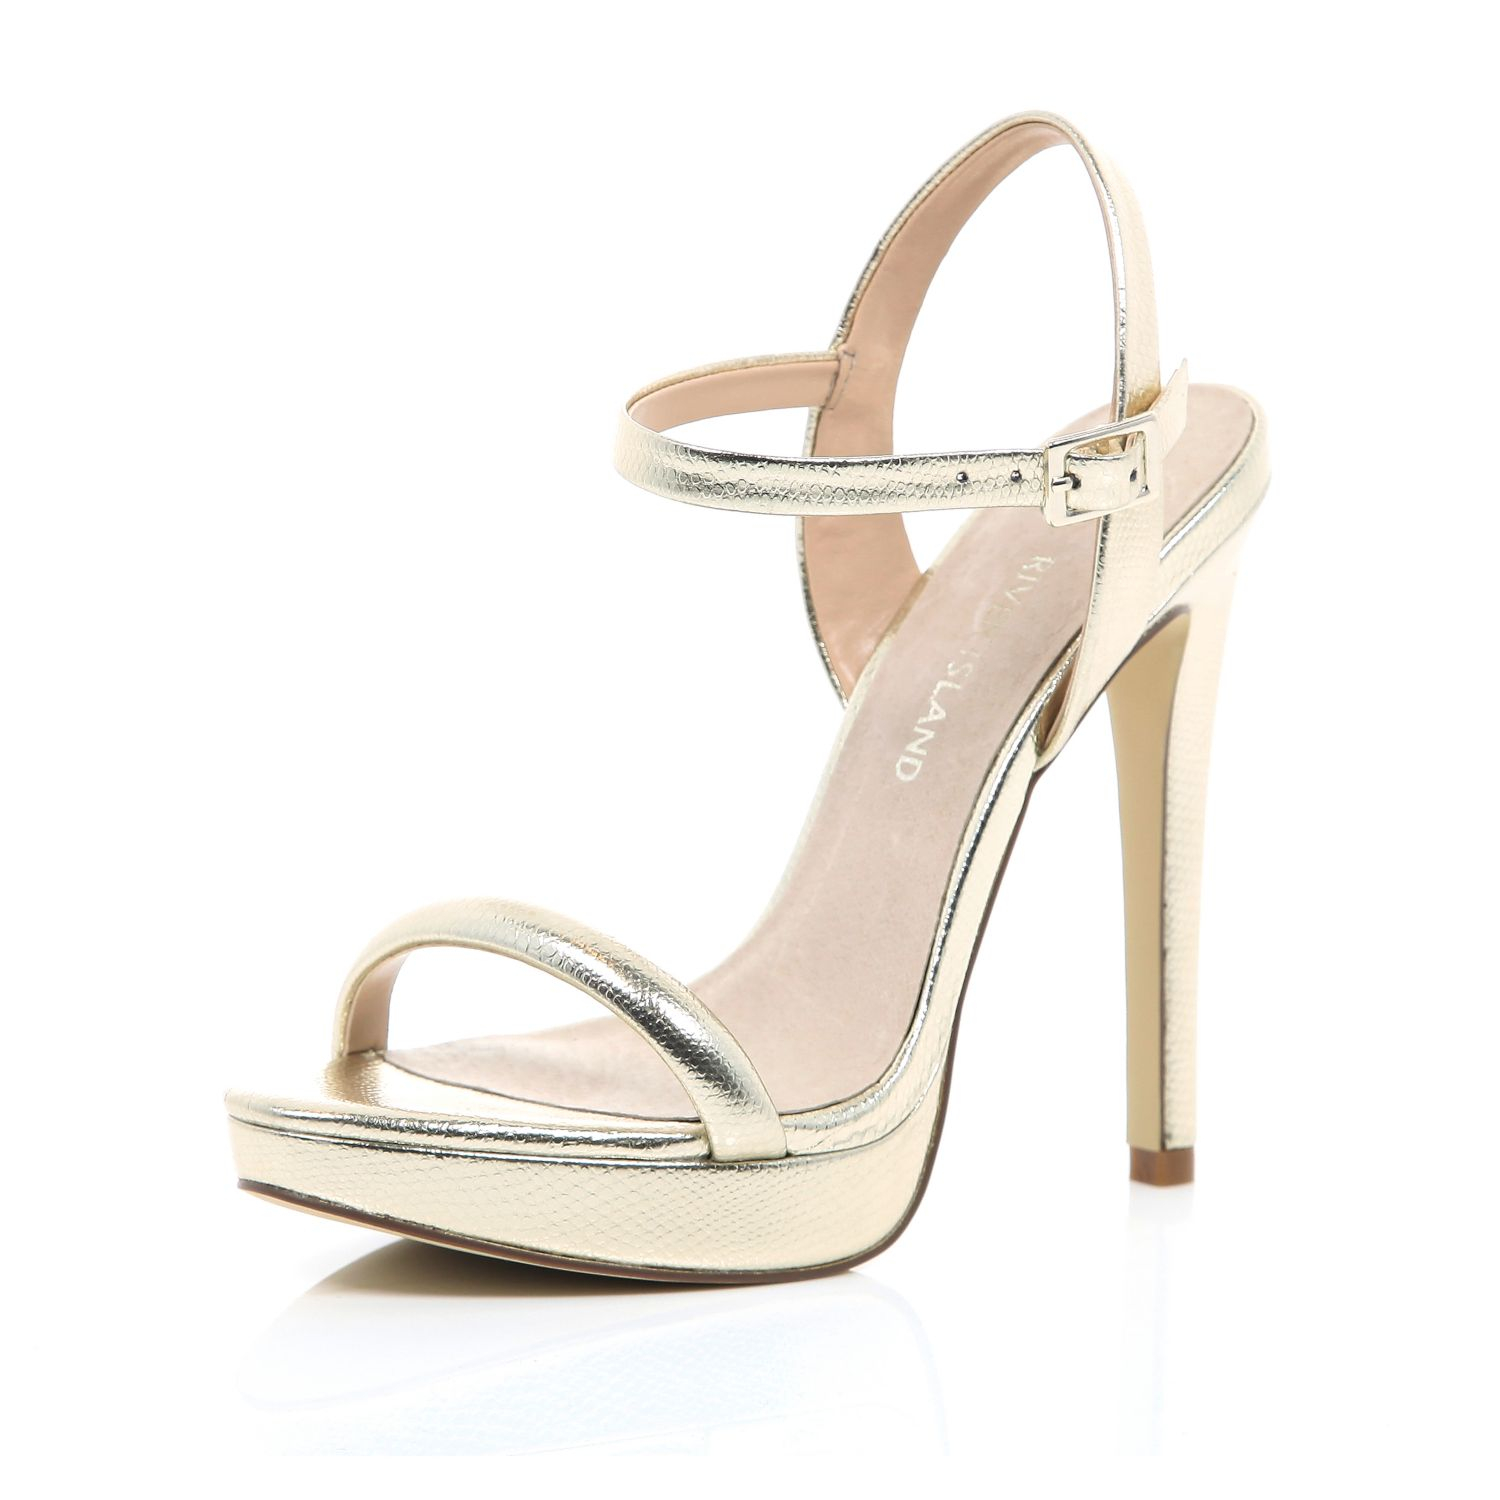 0c34fc7186e River Island Gold Barely There Platform Sandals in Metallic - Lyst